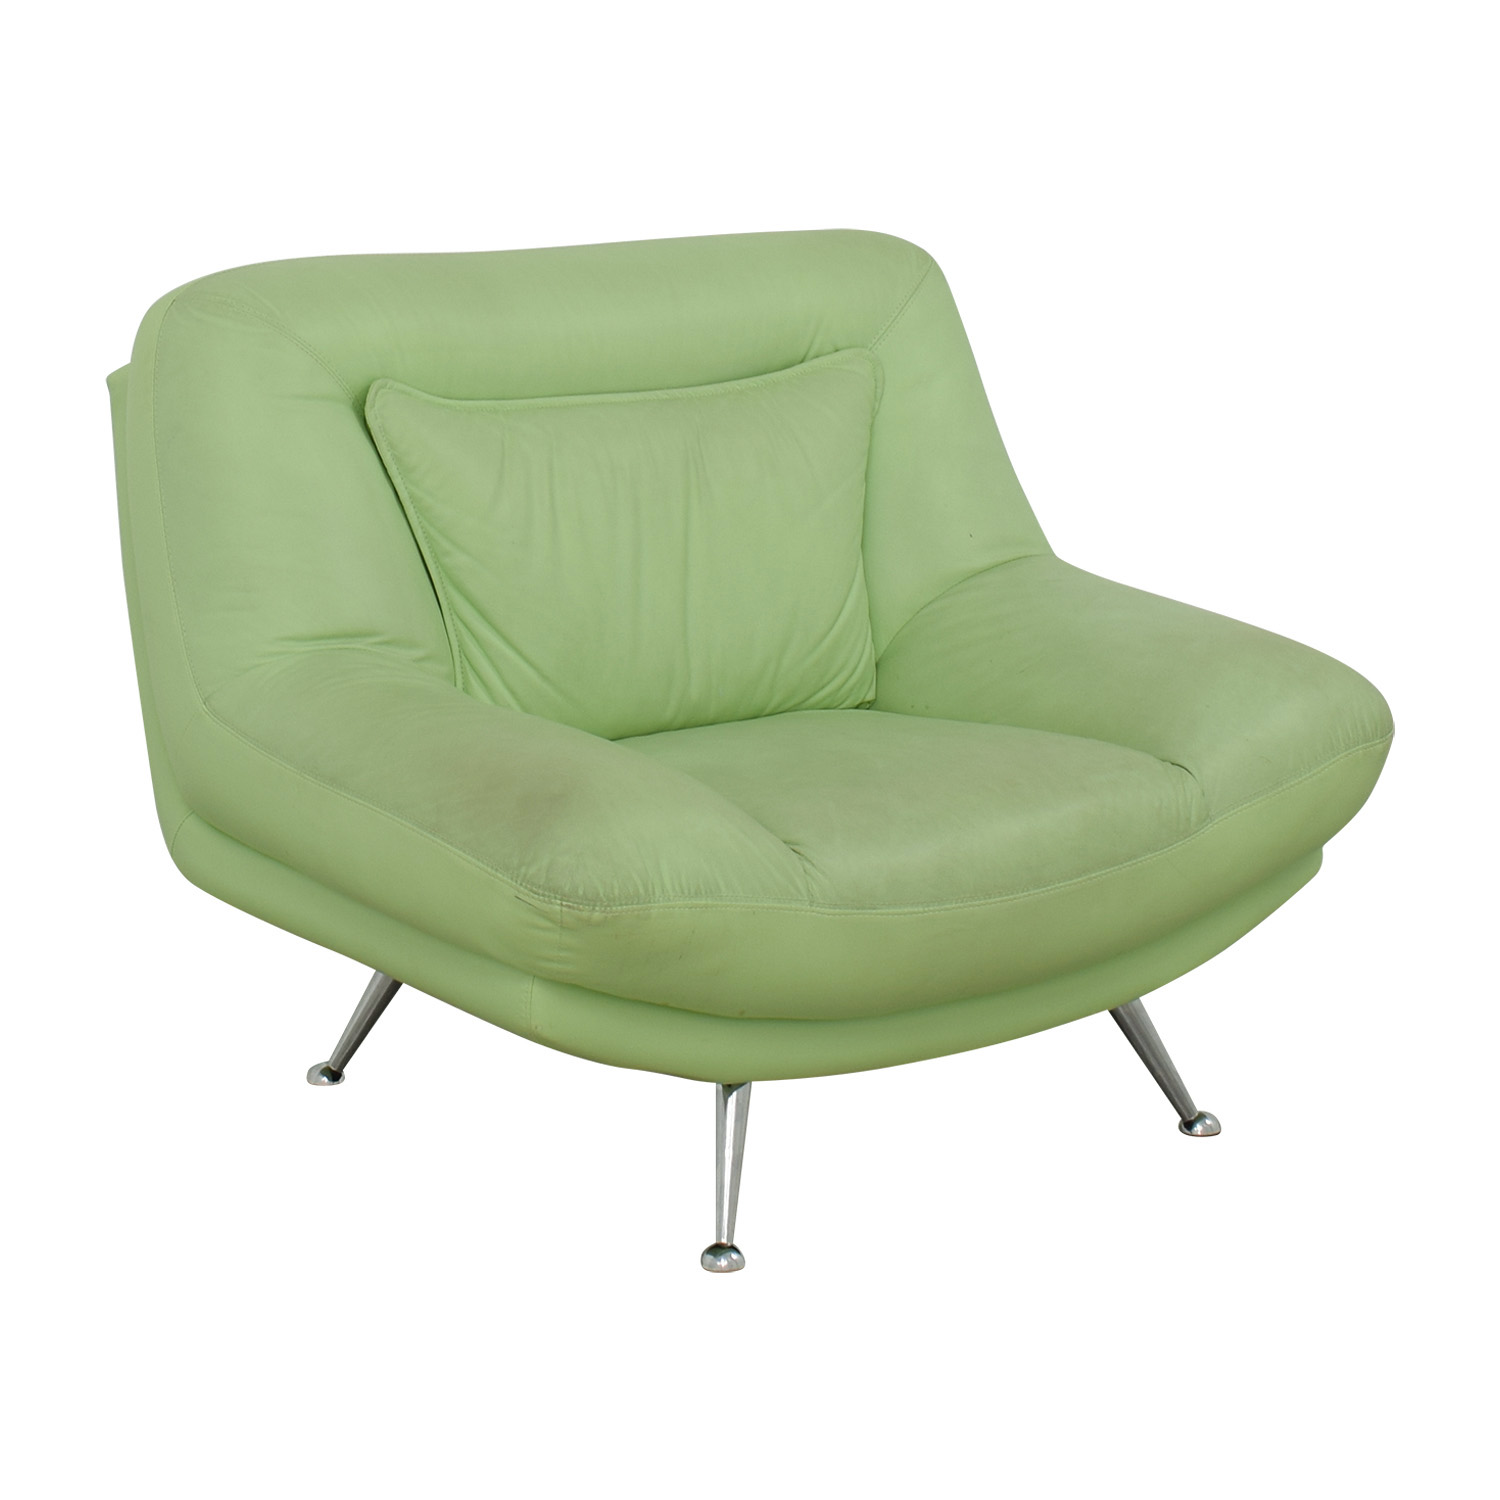 90 Off Italian Surf Green Leather Accent Chair Chairs